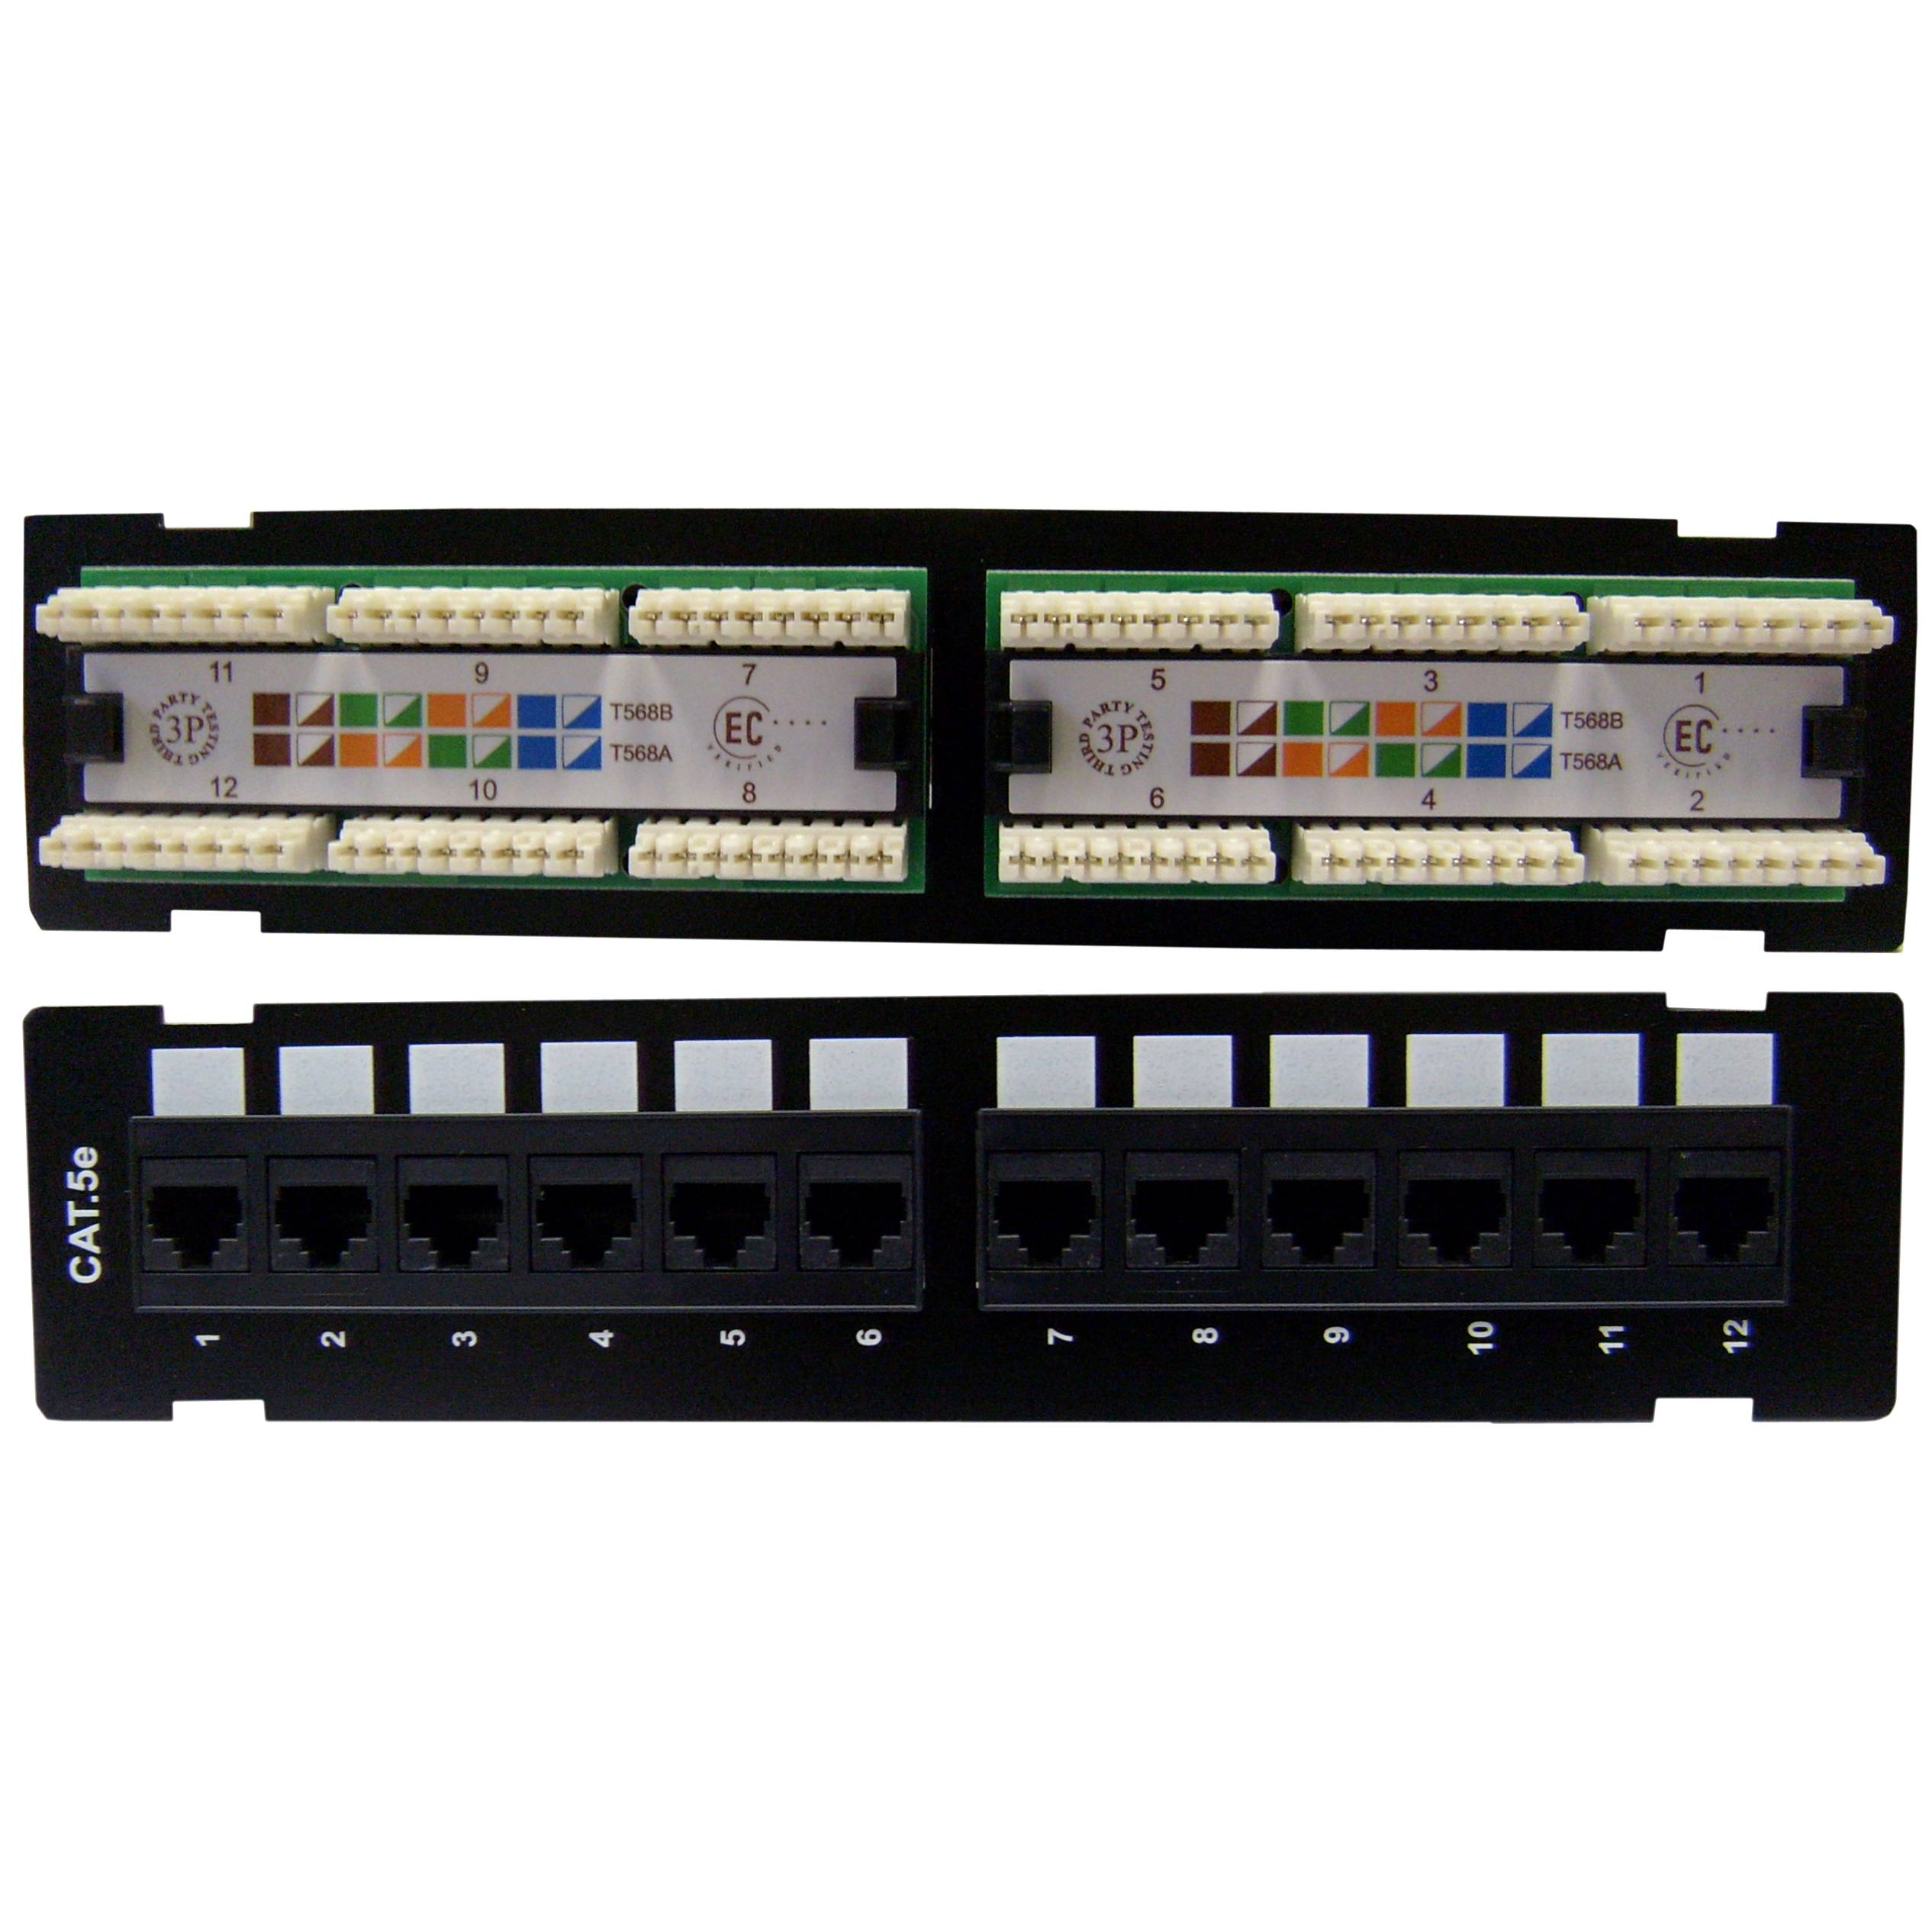 Wall Mount 12 Port Cat5e Patch Panel, 110 Type, 568A & 568B Compatible,